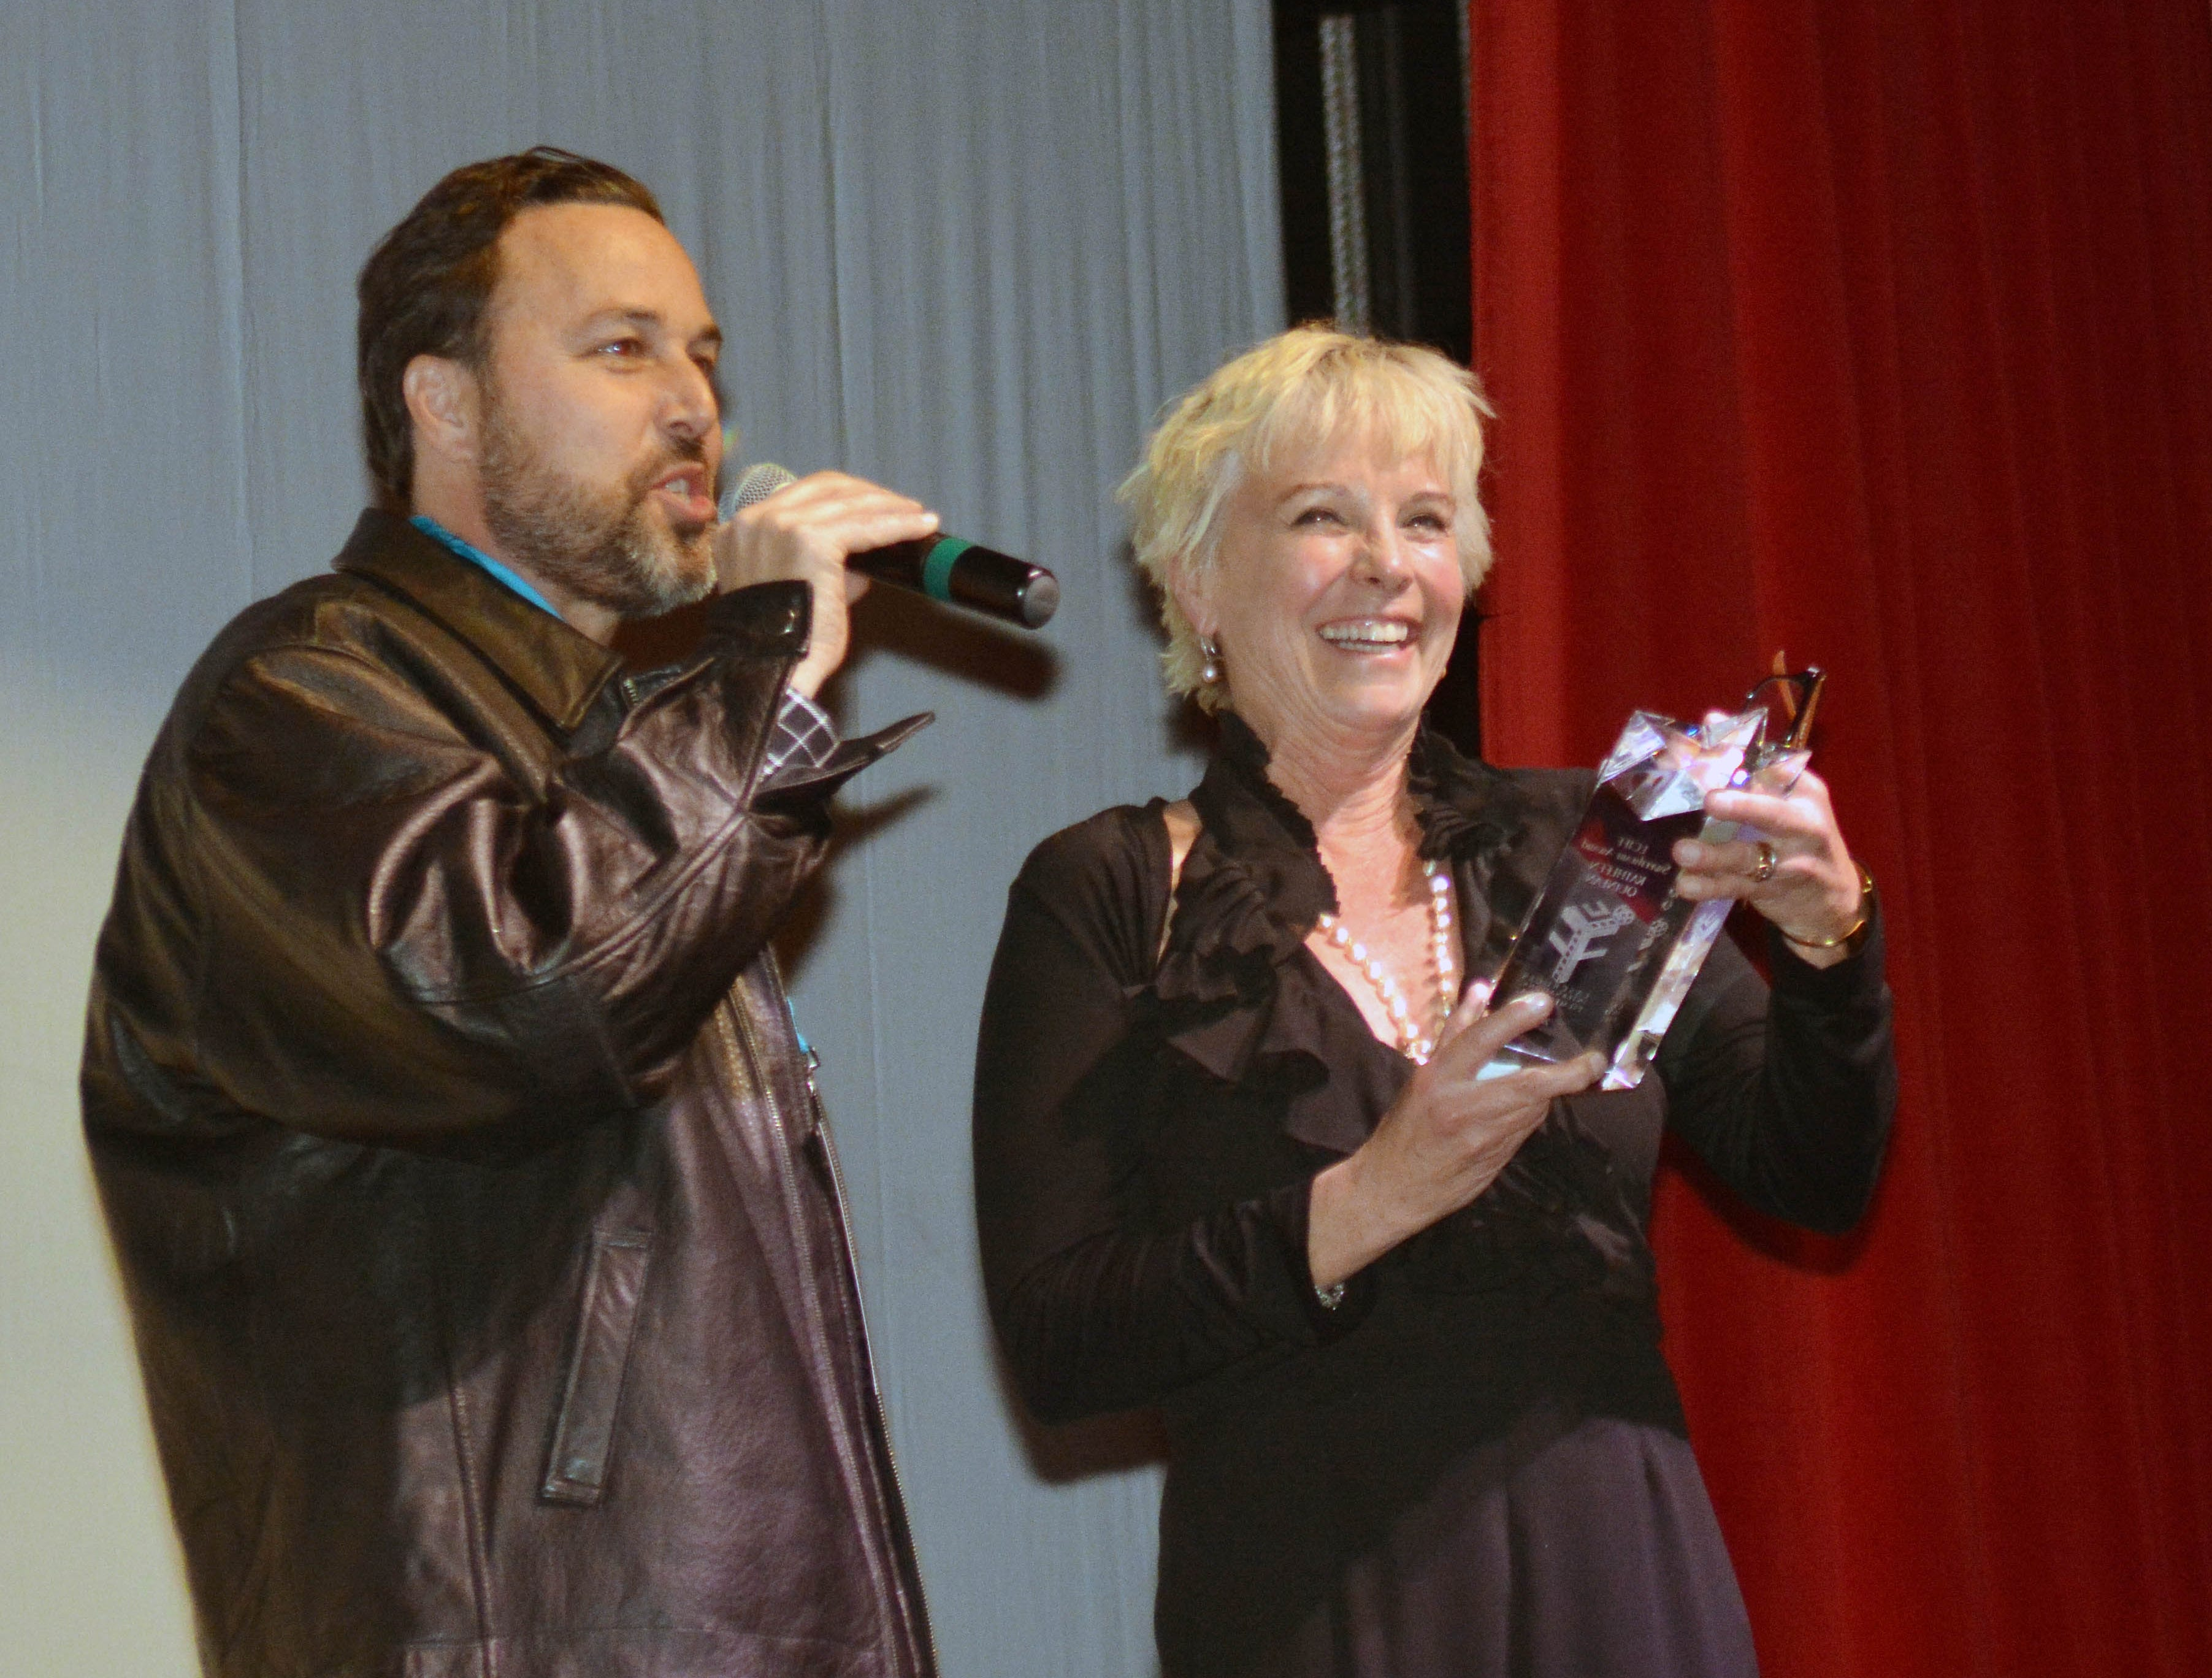 """""""The Sweetheart Award"""" was presented to Kathleen Quinlan as a surprise by LCIFF President Ross Marks as part of the Tuesday night's ceremonies at the Rio Grande Theater."""